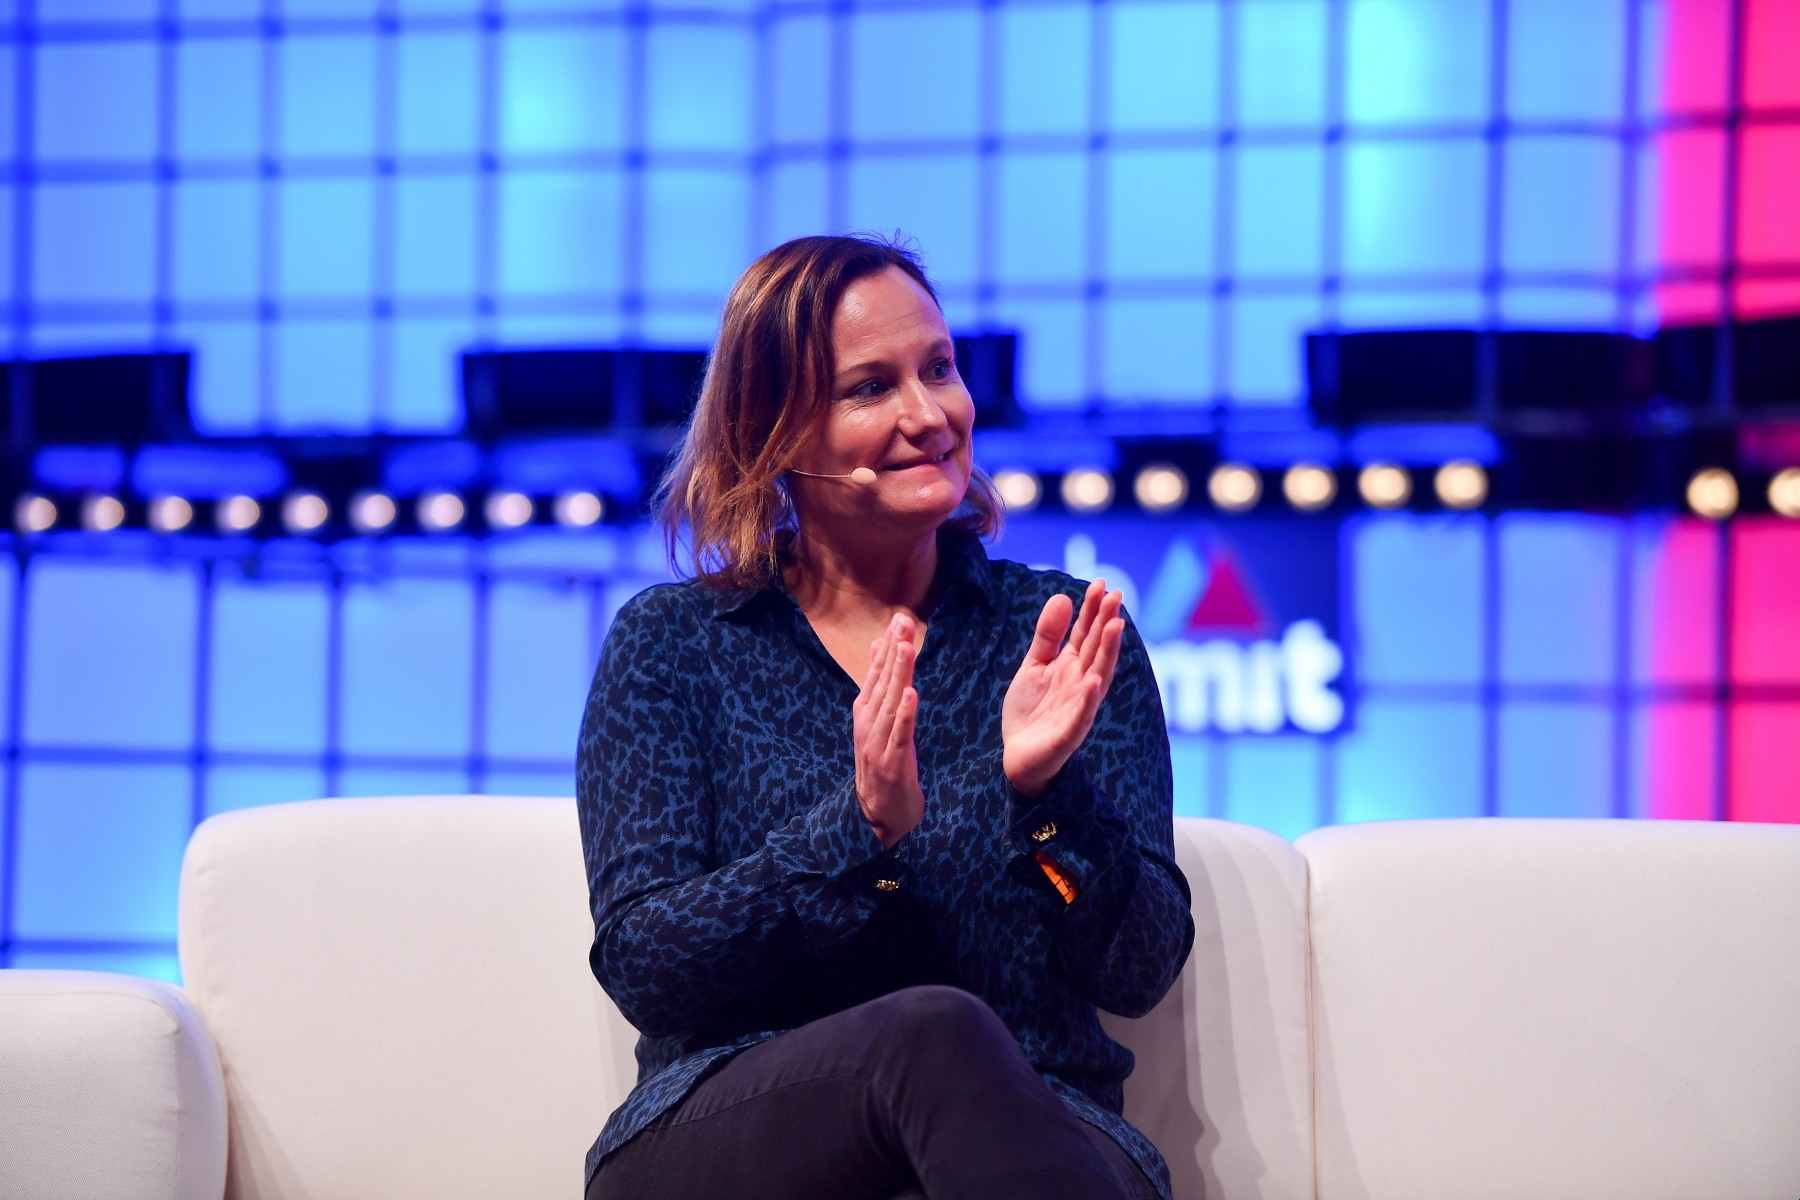 Gillian at Web Summit